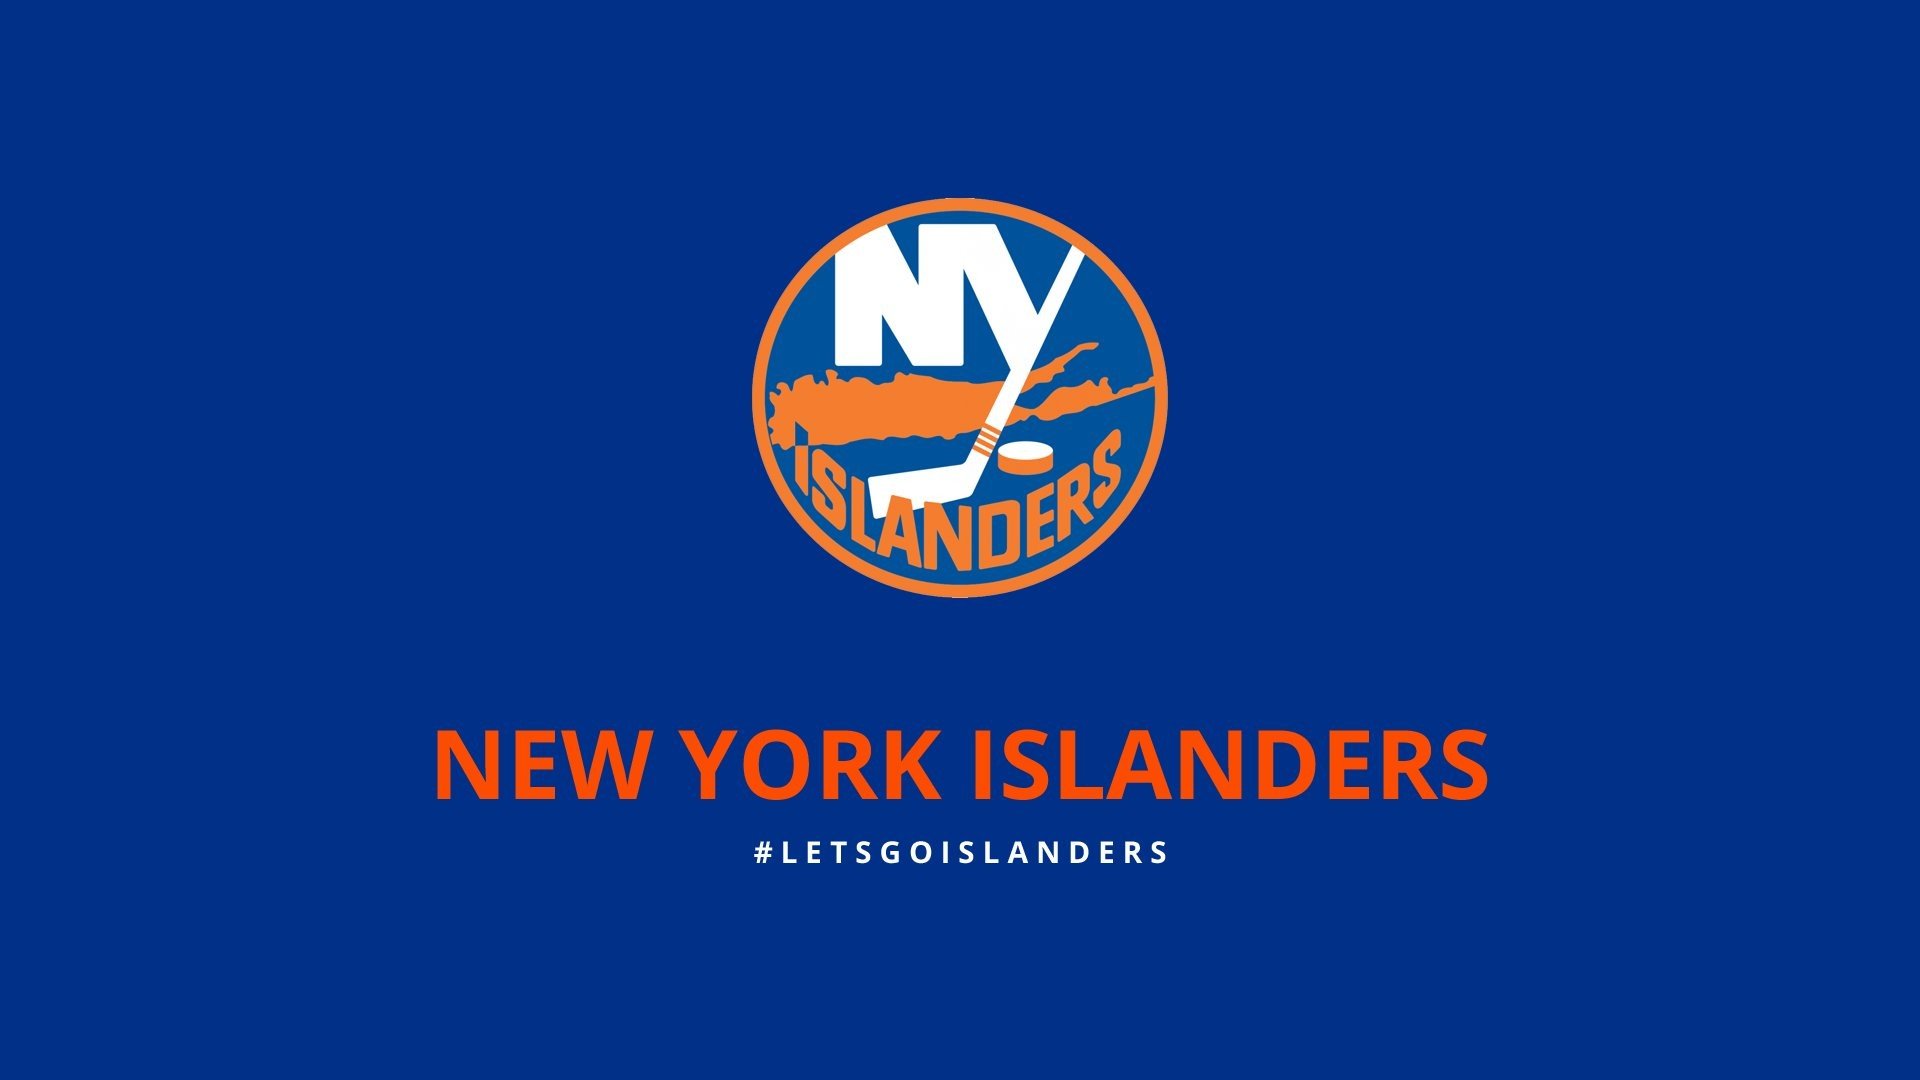 1920x1080 NEW YORK ISLANDERS Hockey Nhl 3 Wallpaper Background